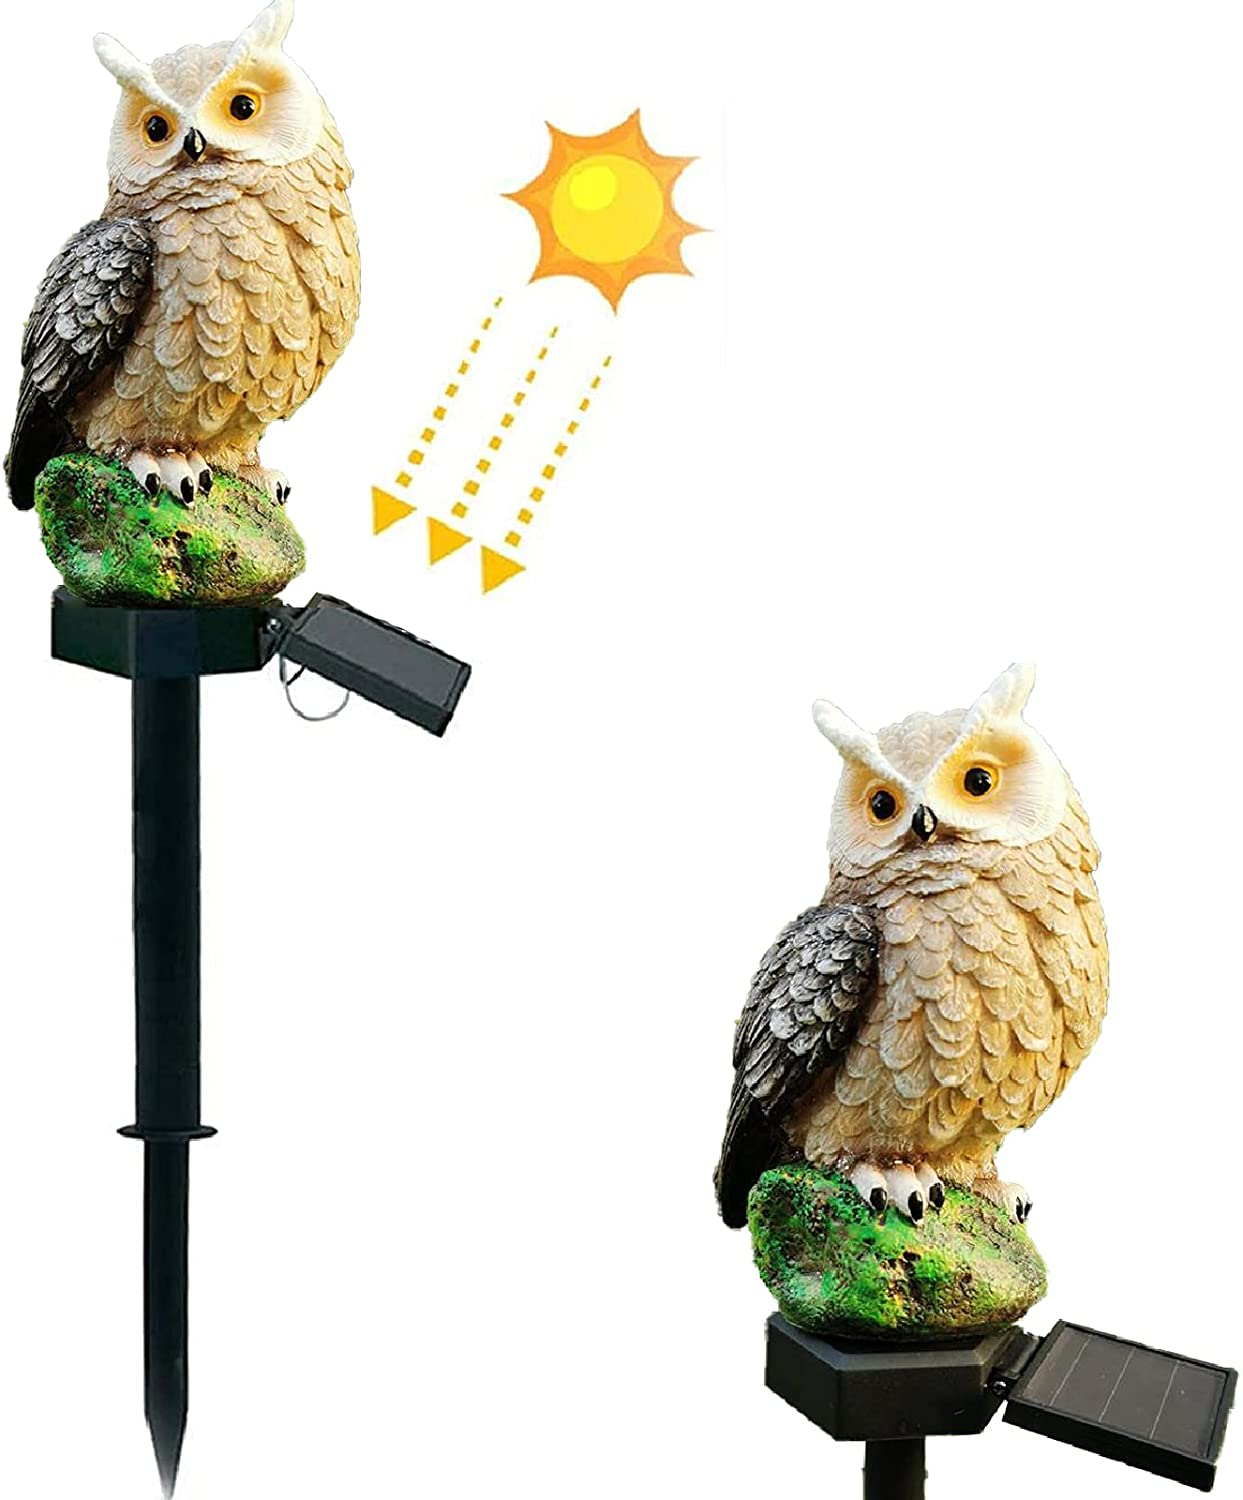 Vency Solar Garden Lights Lawn Lights, Owl Bird Shape Solar-Powered Lamp Waterproof Outdoor Decorative Resin Owl Solar Ground LED Lights with Stake for Garden Lawn Pathway Yard Decortions (Brown)